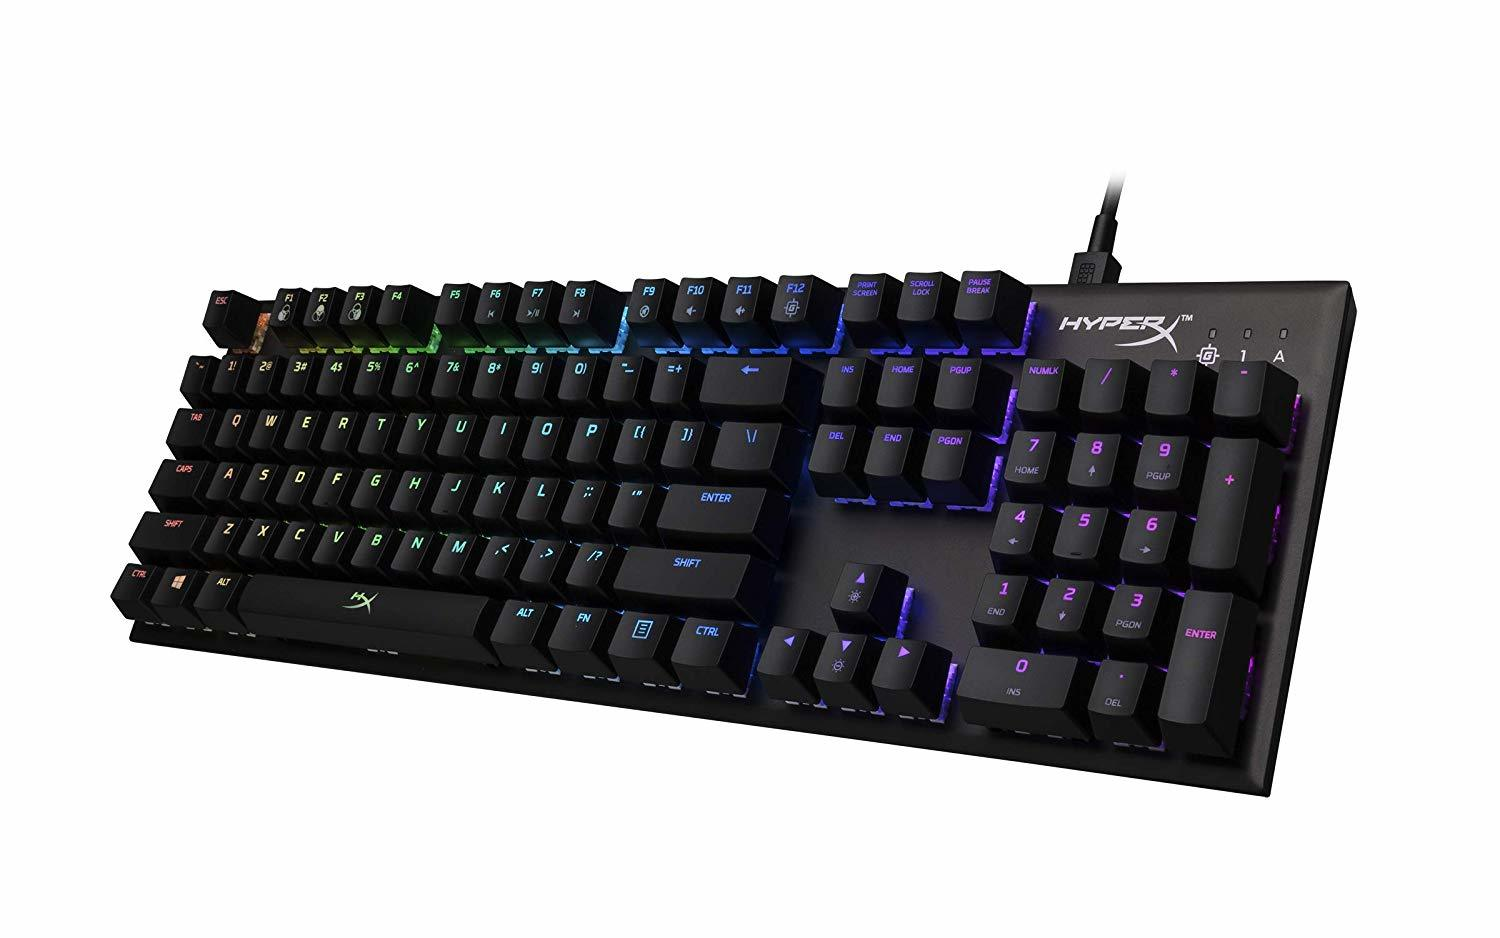 HyperX Alloy FPS RGB Mechanical Gaming Keyboard screenshot